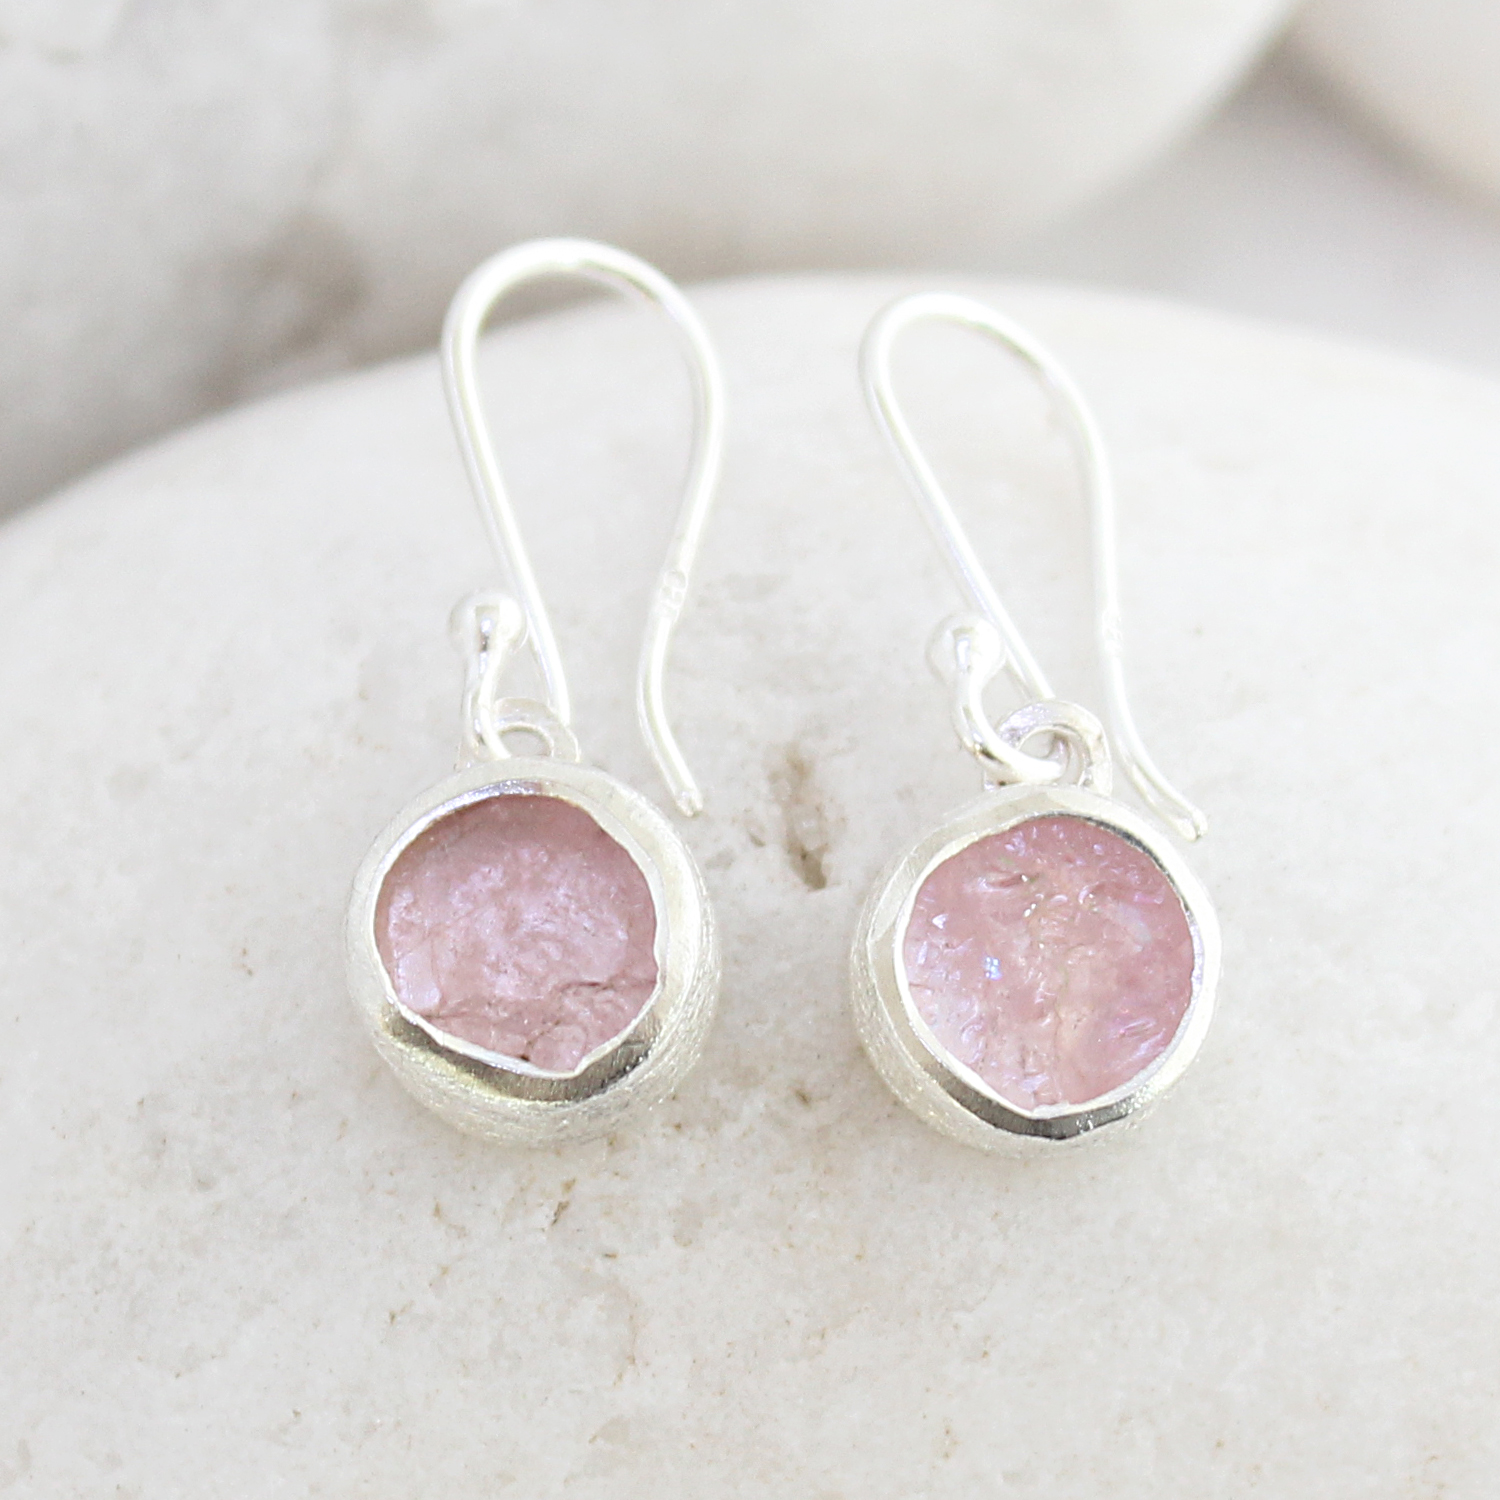 Morganite Gemstone Handmade Sterling Silver Ladies Earrings